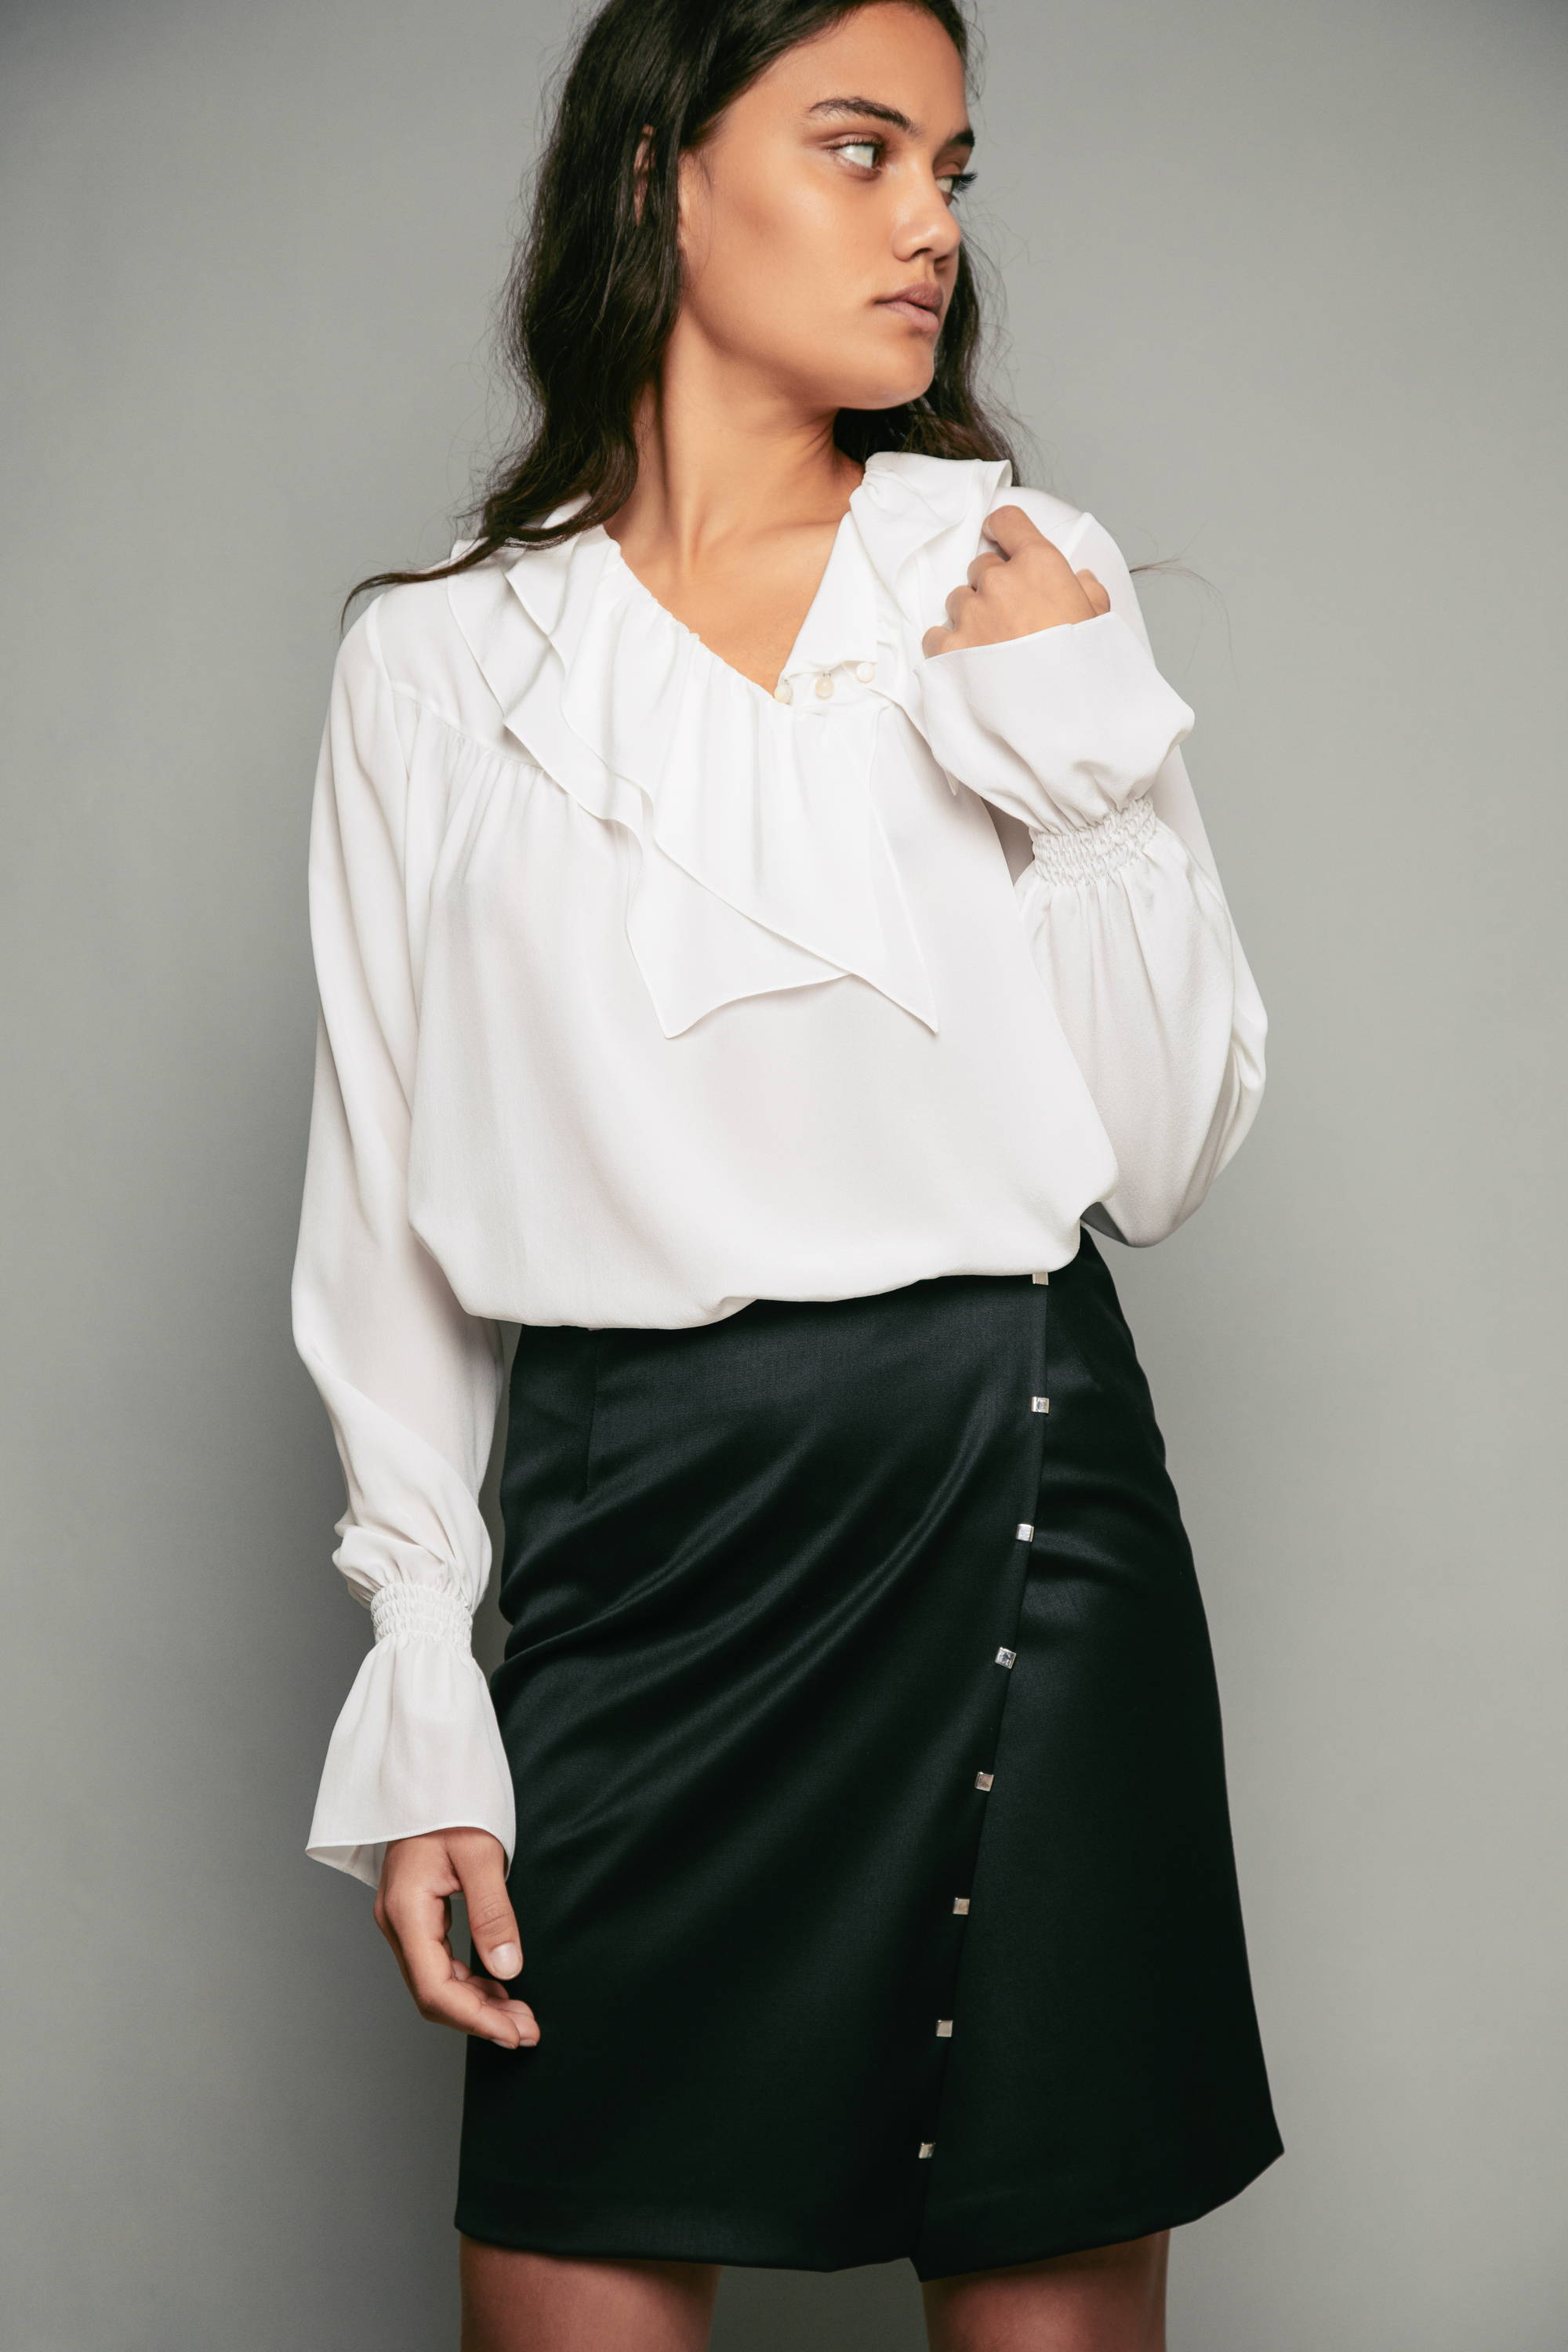 PENDA • Luxury Designer Fashion  • Charming Crepe de Chine Satin Blouse • Sustainable wool Skirt embroidered with silver rings